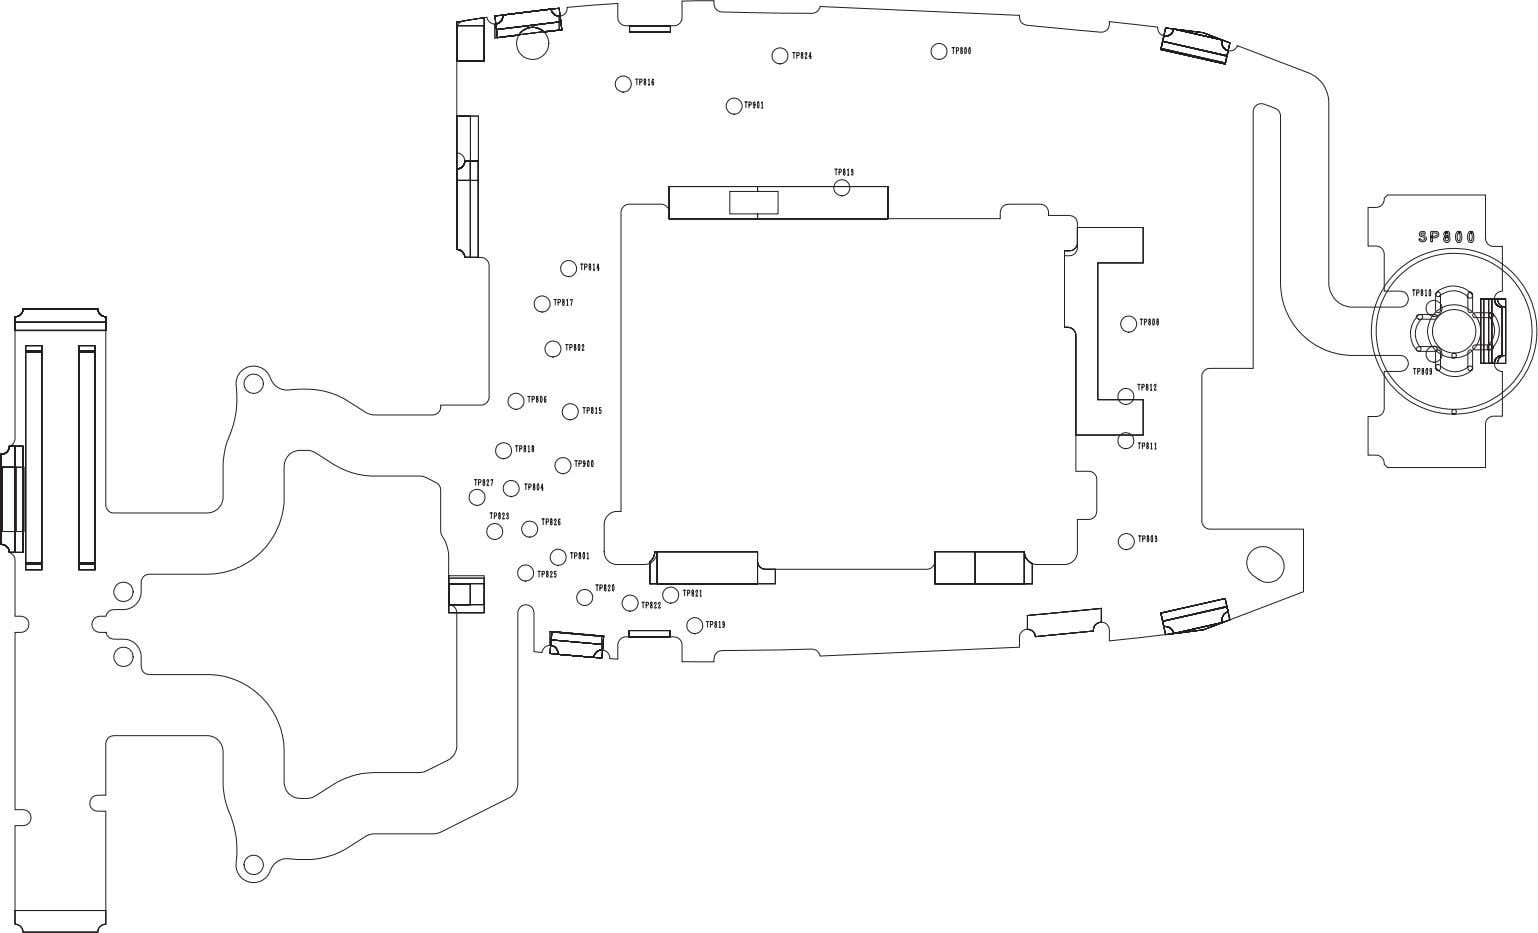 LAYOUT DIAGRAMS Figure 12.4: Display PCB Layout - Side B PMCD030901C8 Section 12 Issue 1 Service